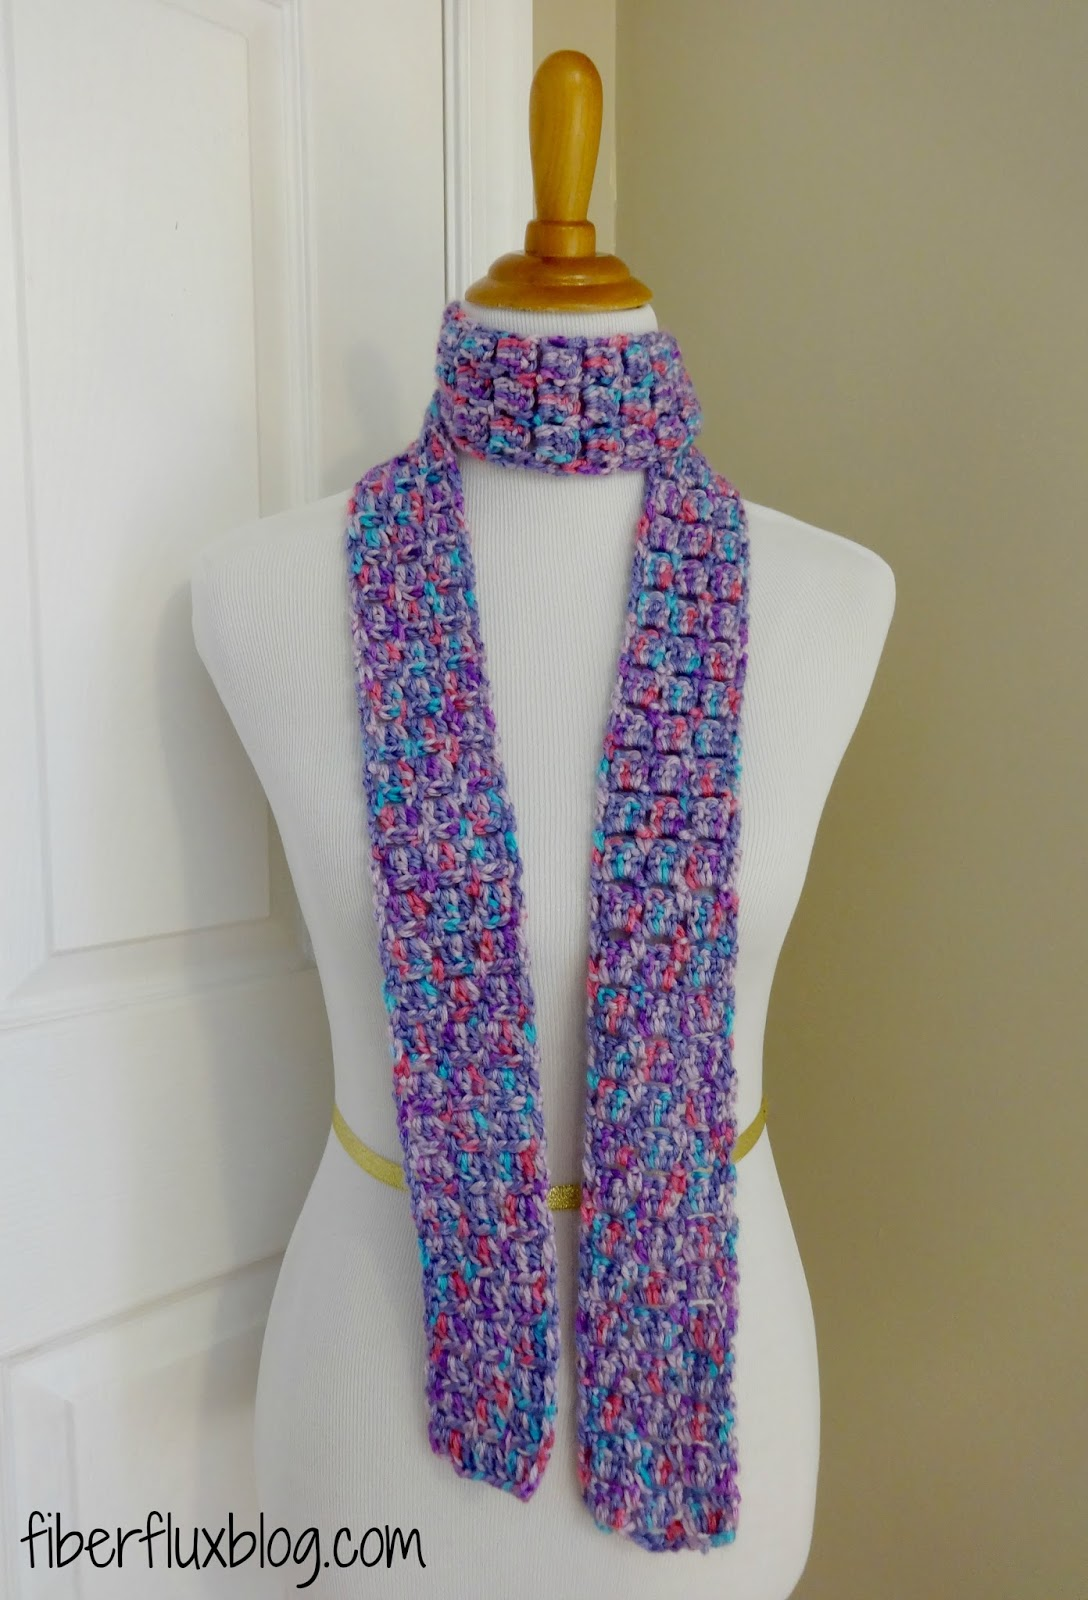 Free Crochet Patterns For Skinny Scarf : Free Crochet Pattern...Sugar Violet Skinny Scarf! Fiber ...